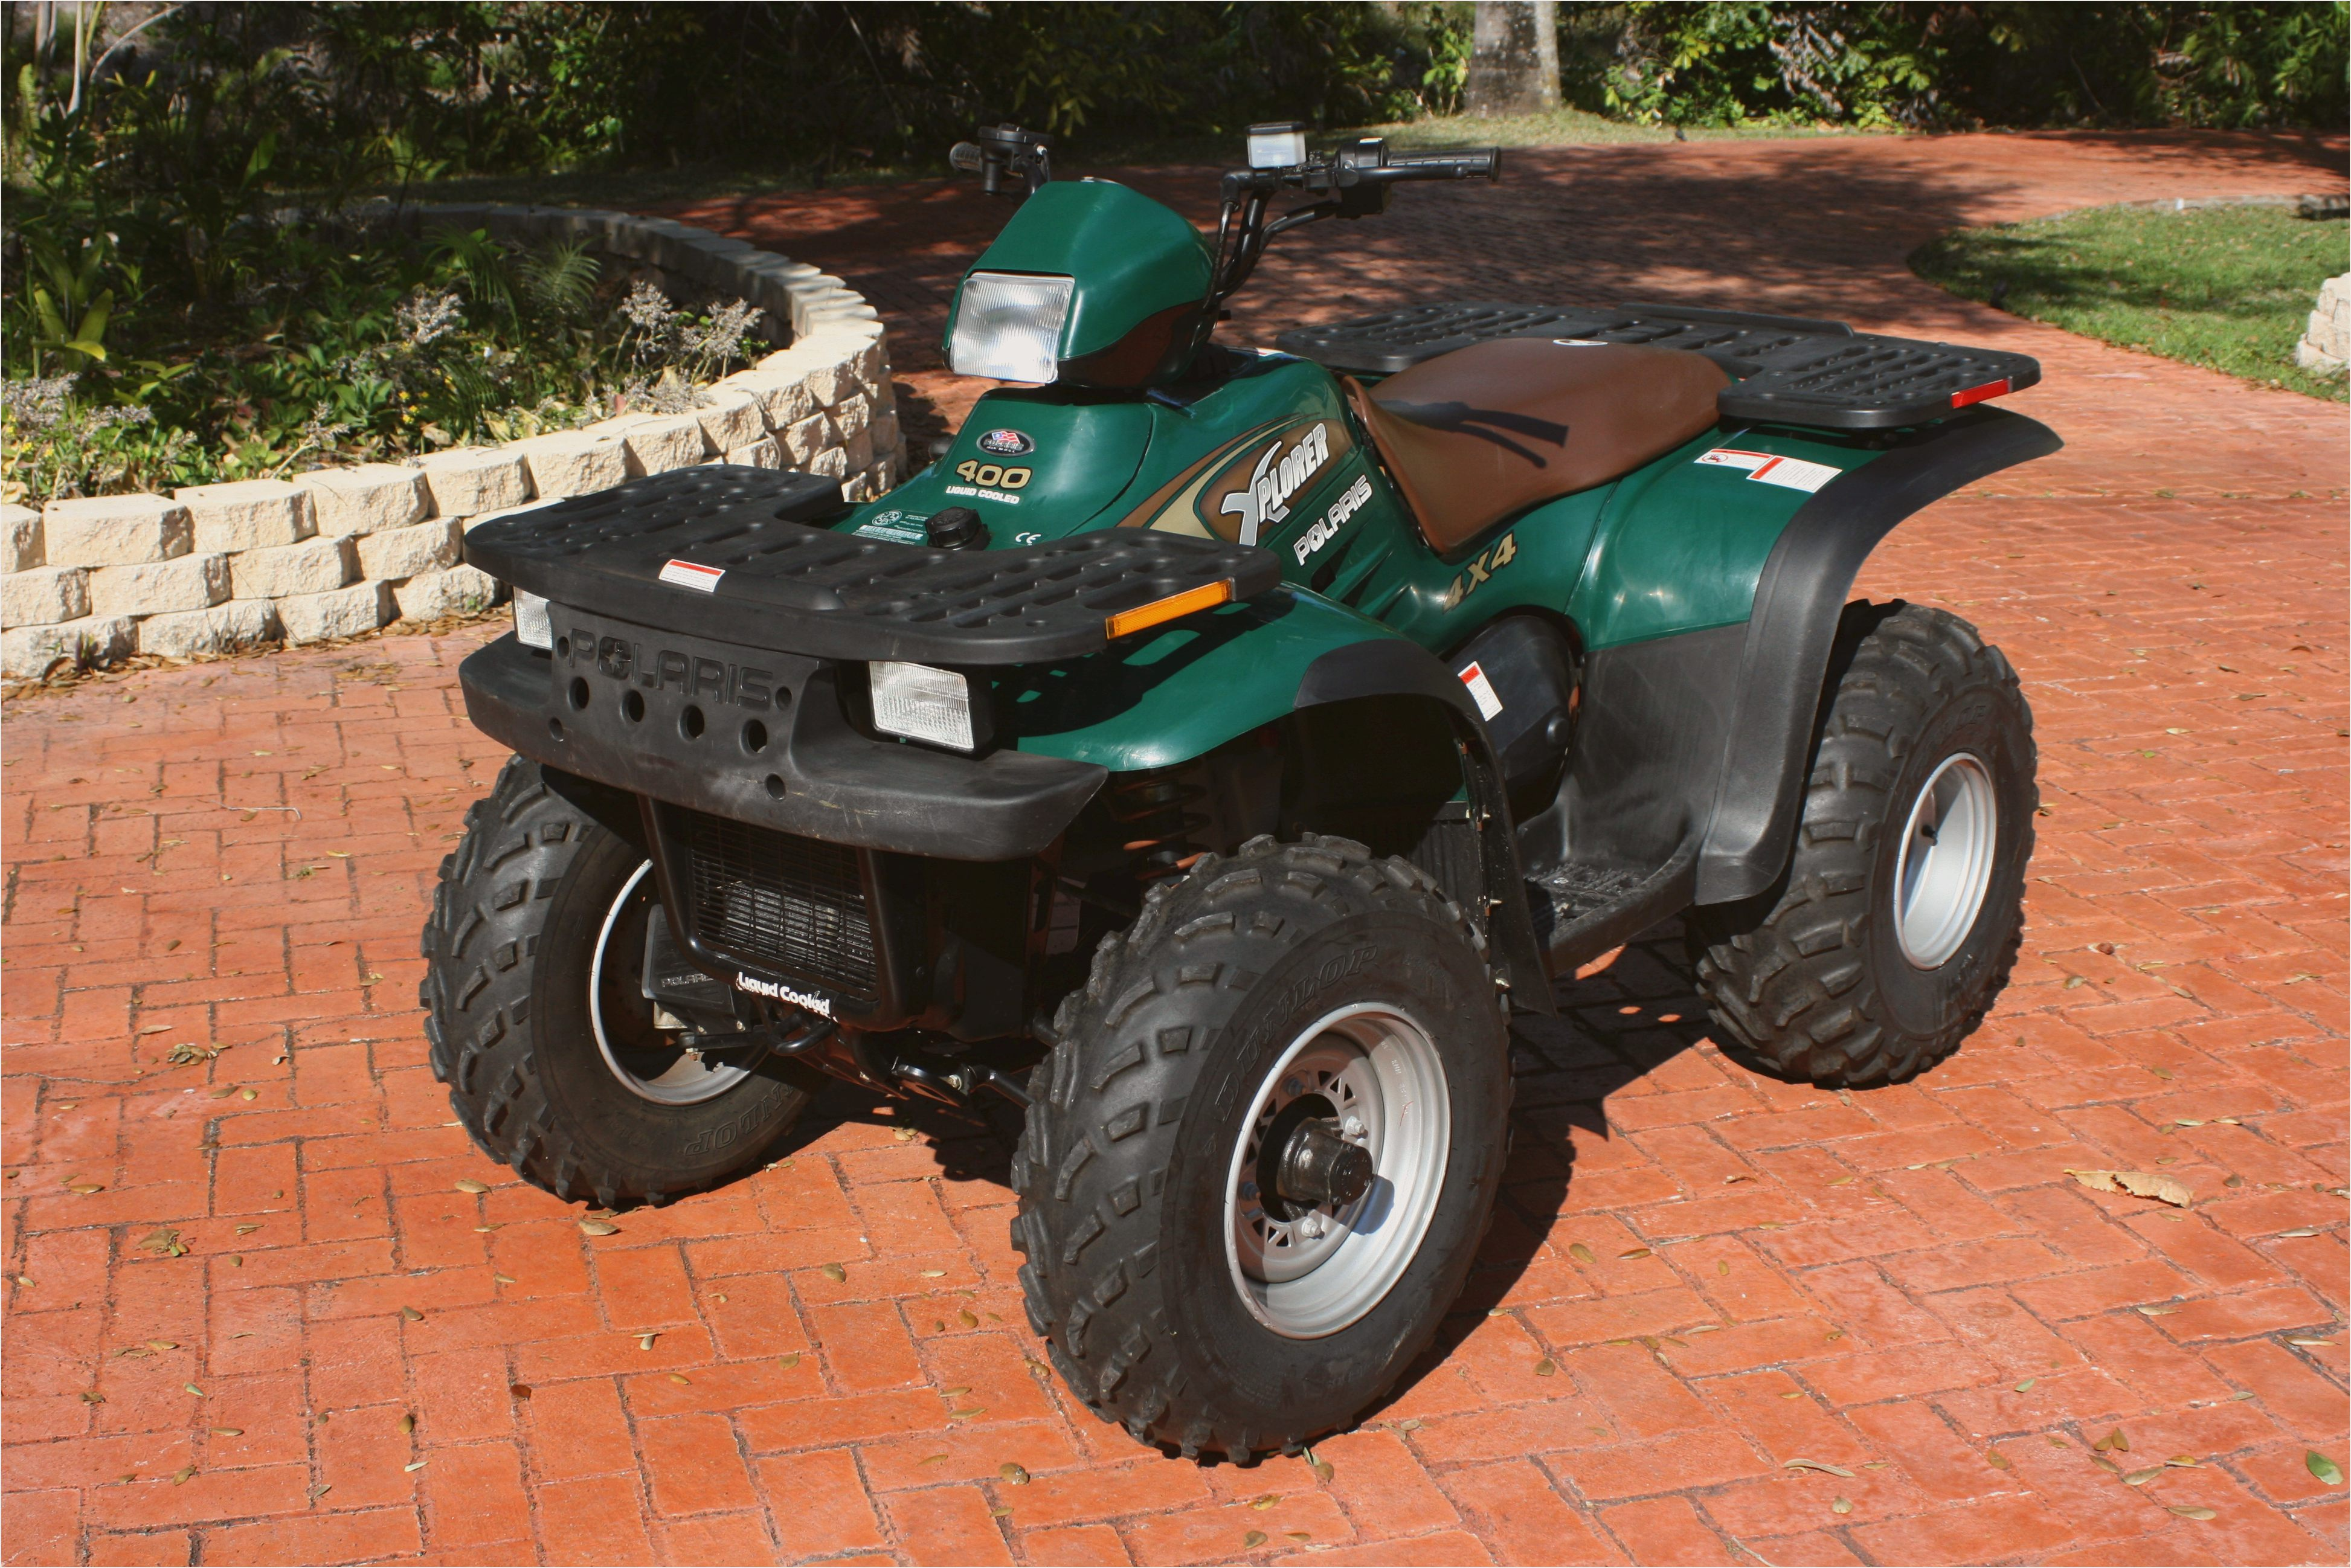 Polaris Xplorer 400 2000 images #120855